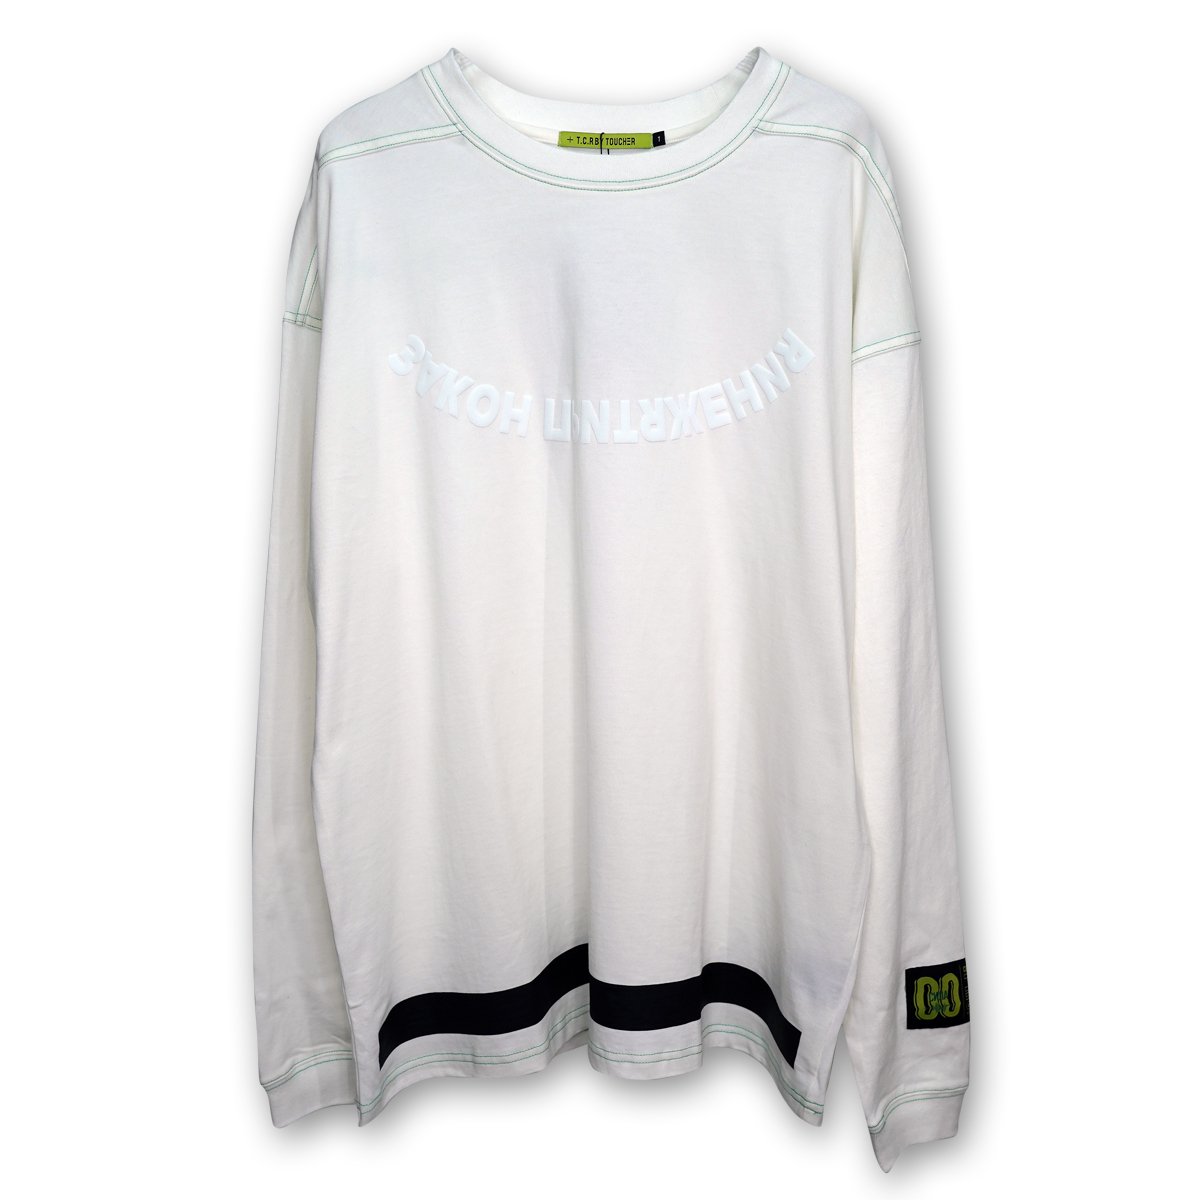 OVERSIZED ATTRACTION L/S TEE - WHITE/GREEN